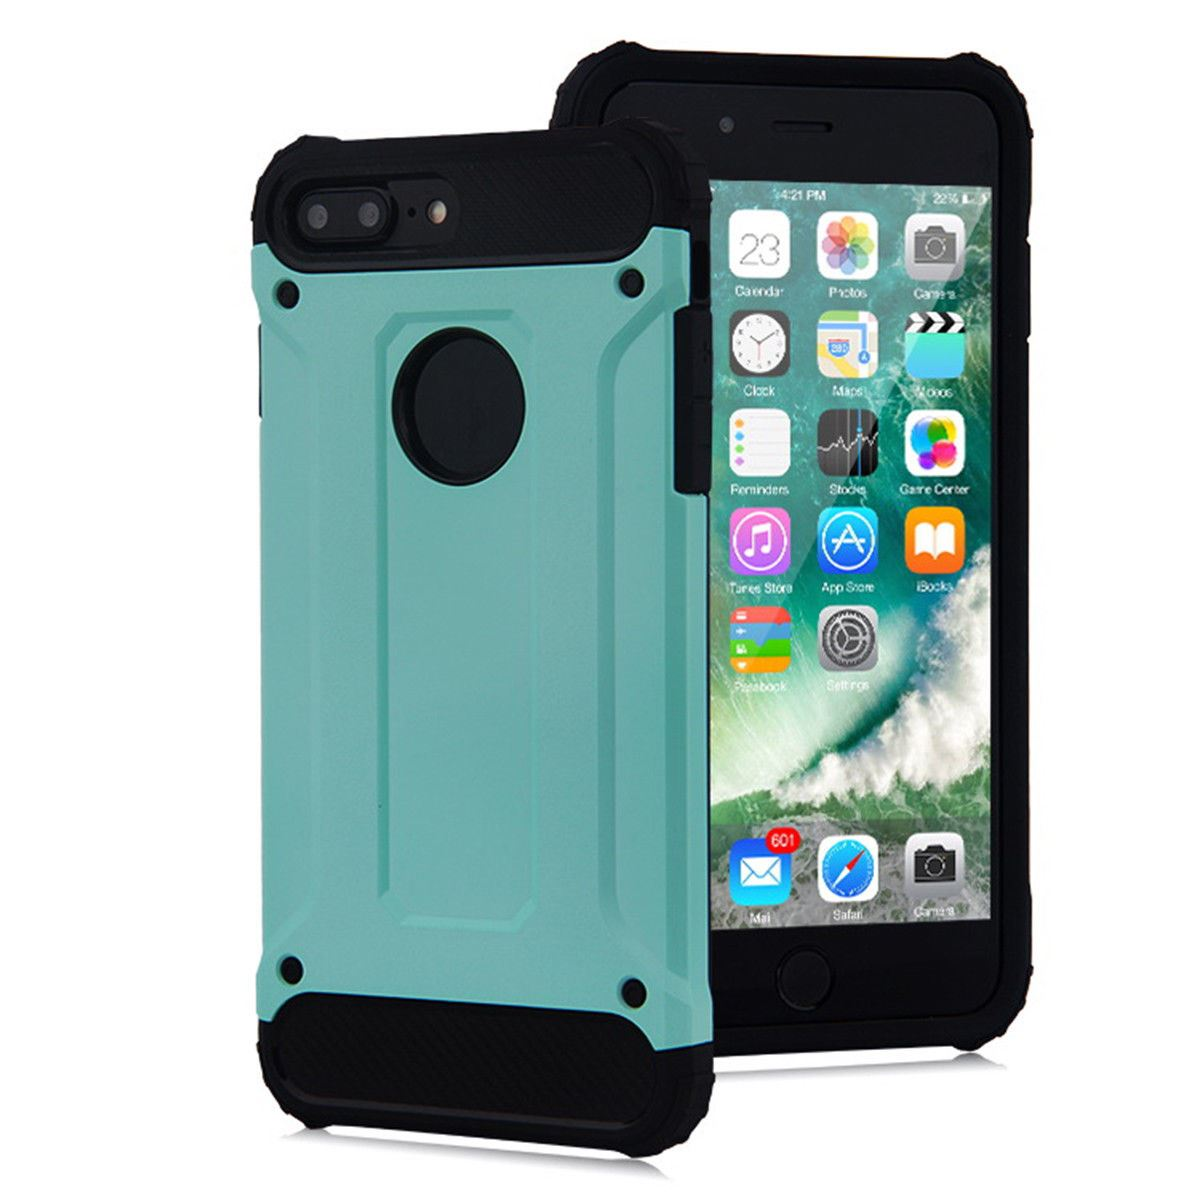 Hybrid-Armor-Shockproof-Rugged-Bumper-Case-For-Apple-iPhone-10-X-8-7-Plus-6s-5s miniature 73